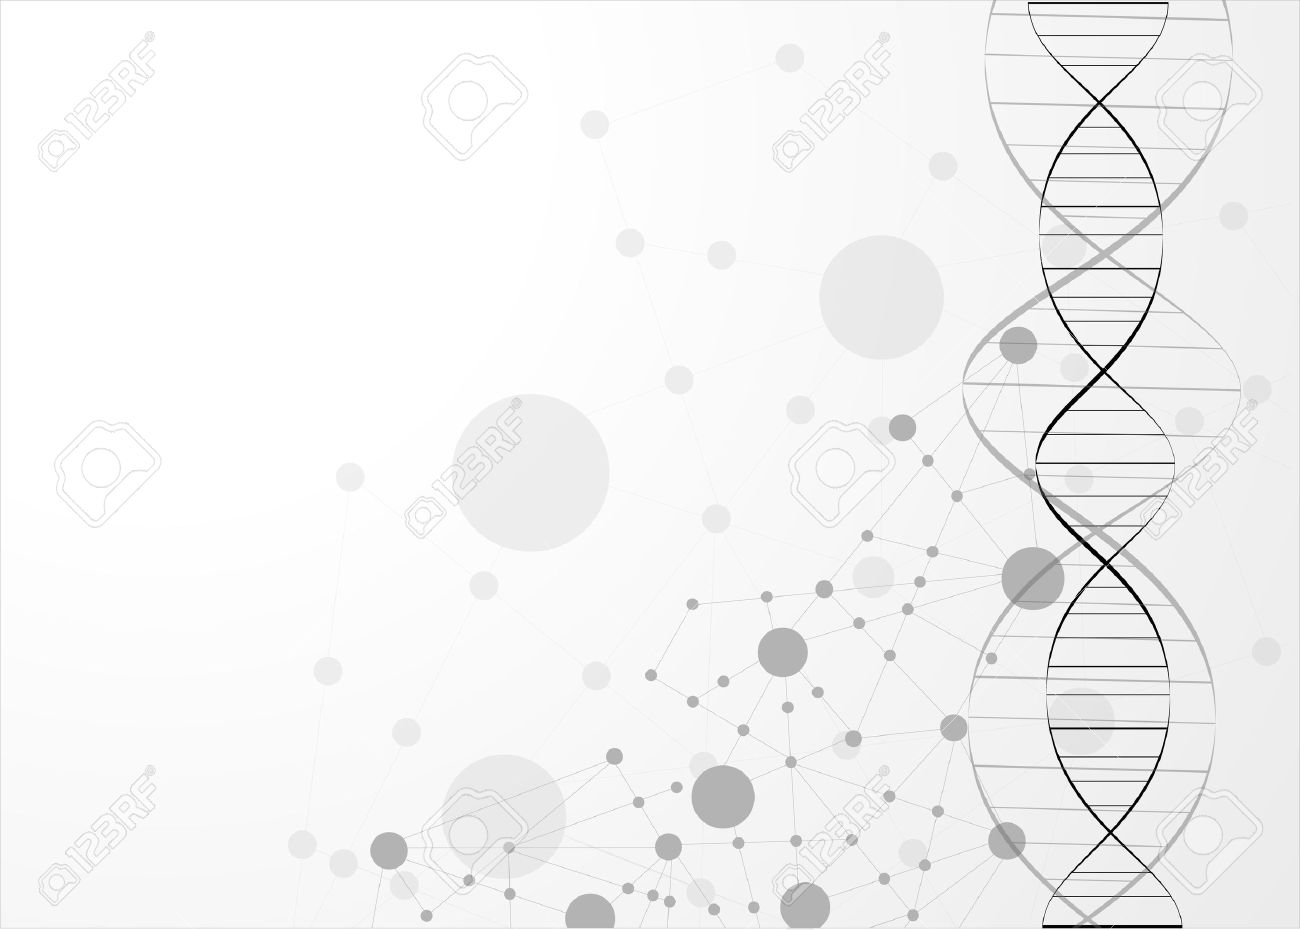 Eps10 Dna Molecule Abstract Background Royalty Cliparts 1300x930